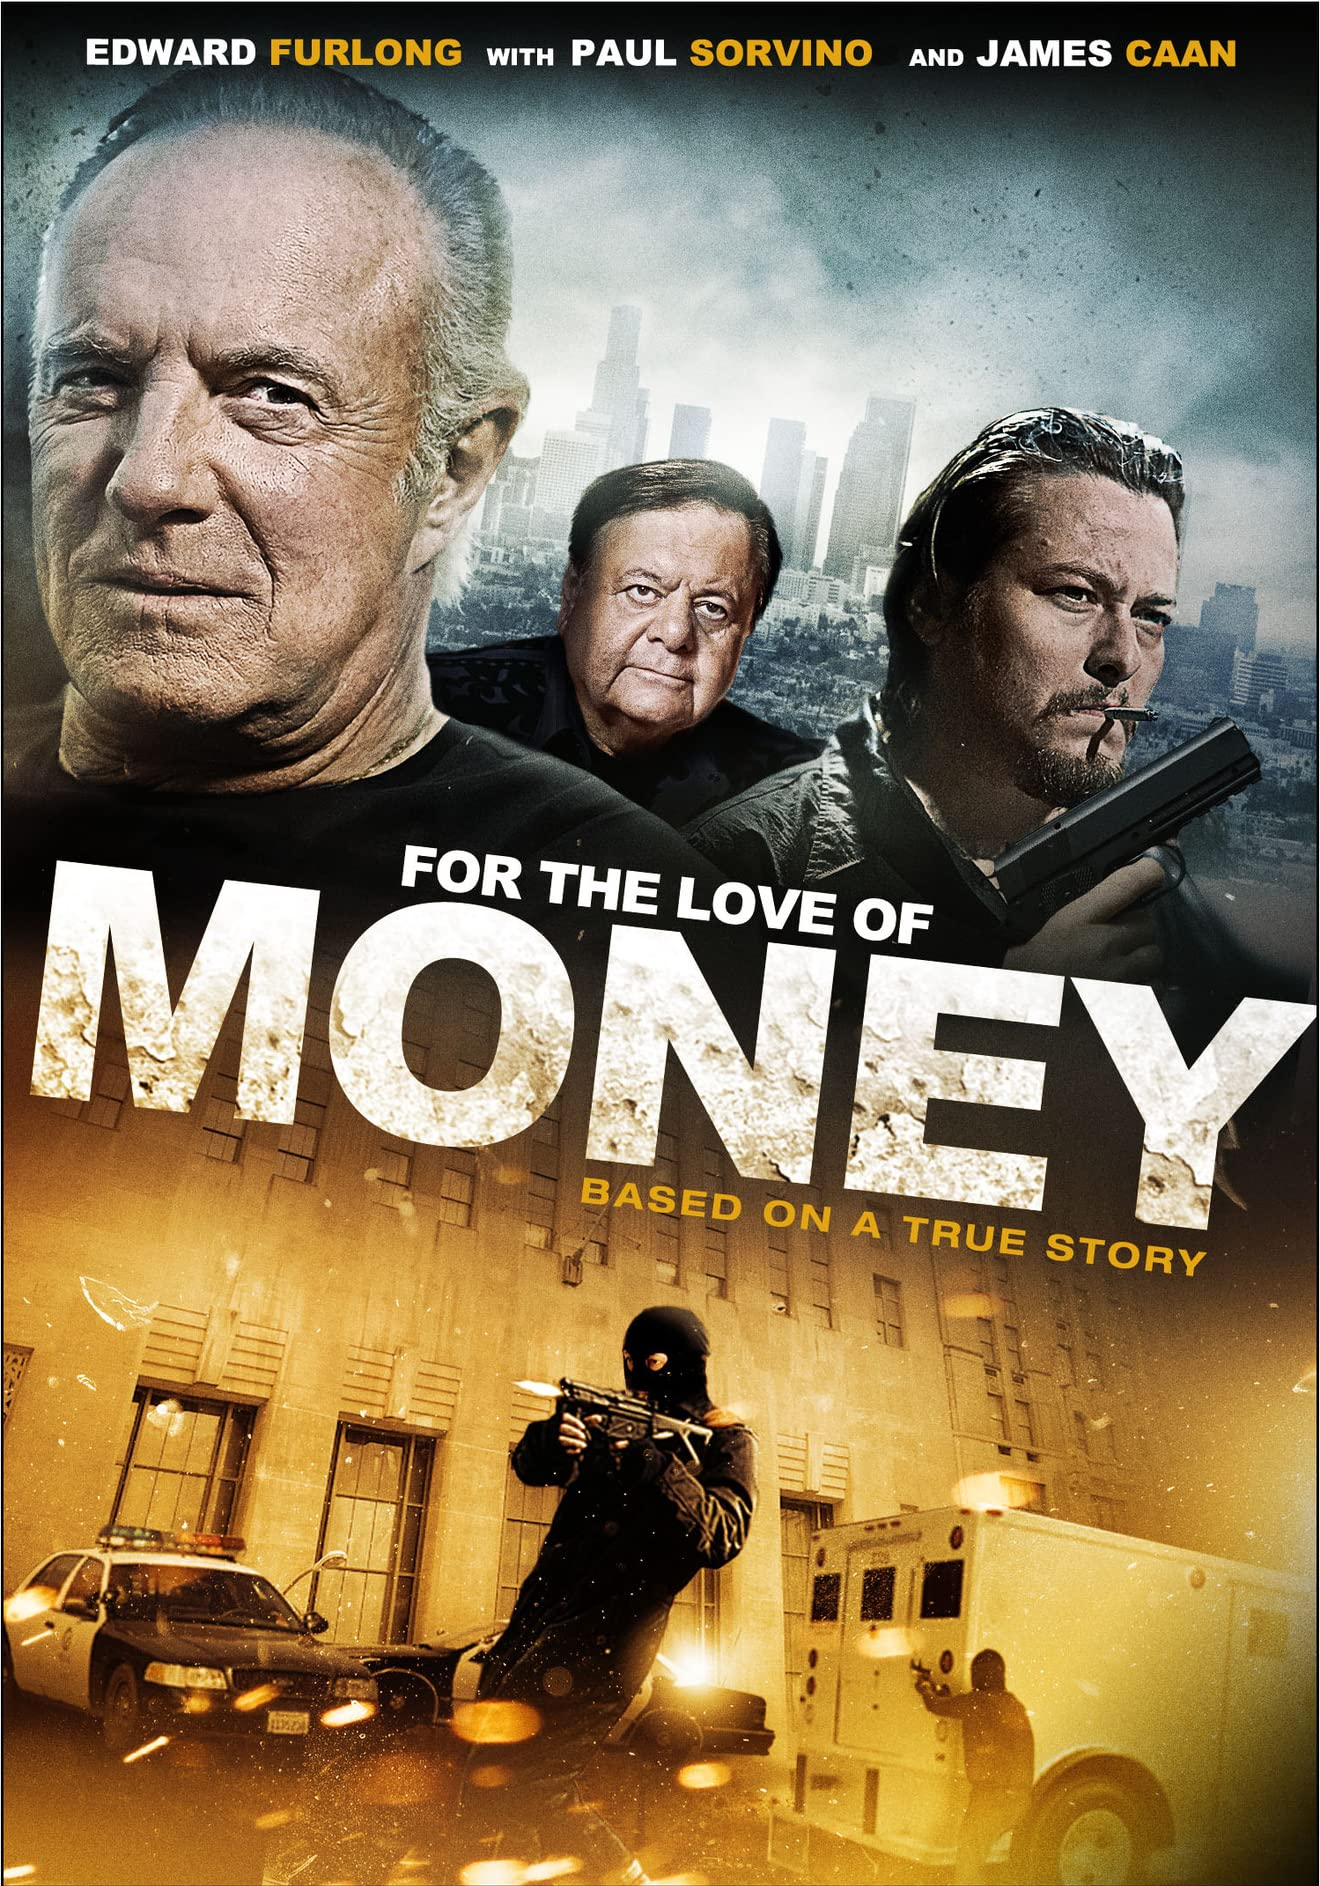 For the Love of Money in hindi download free in torrent